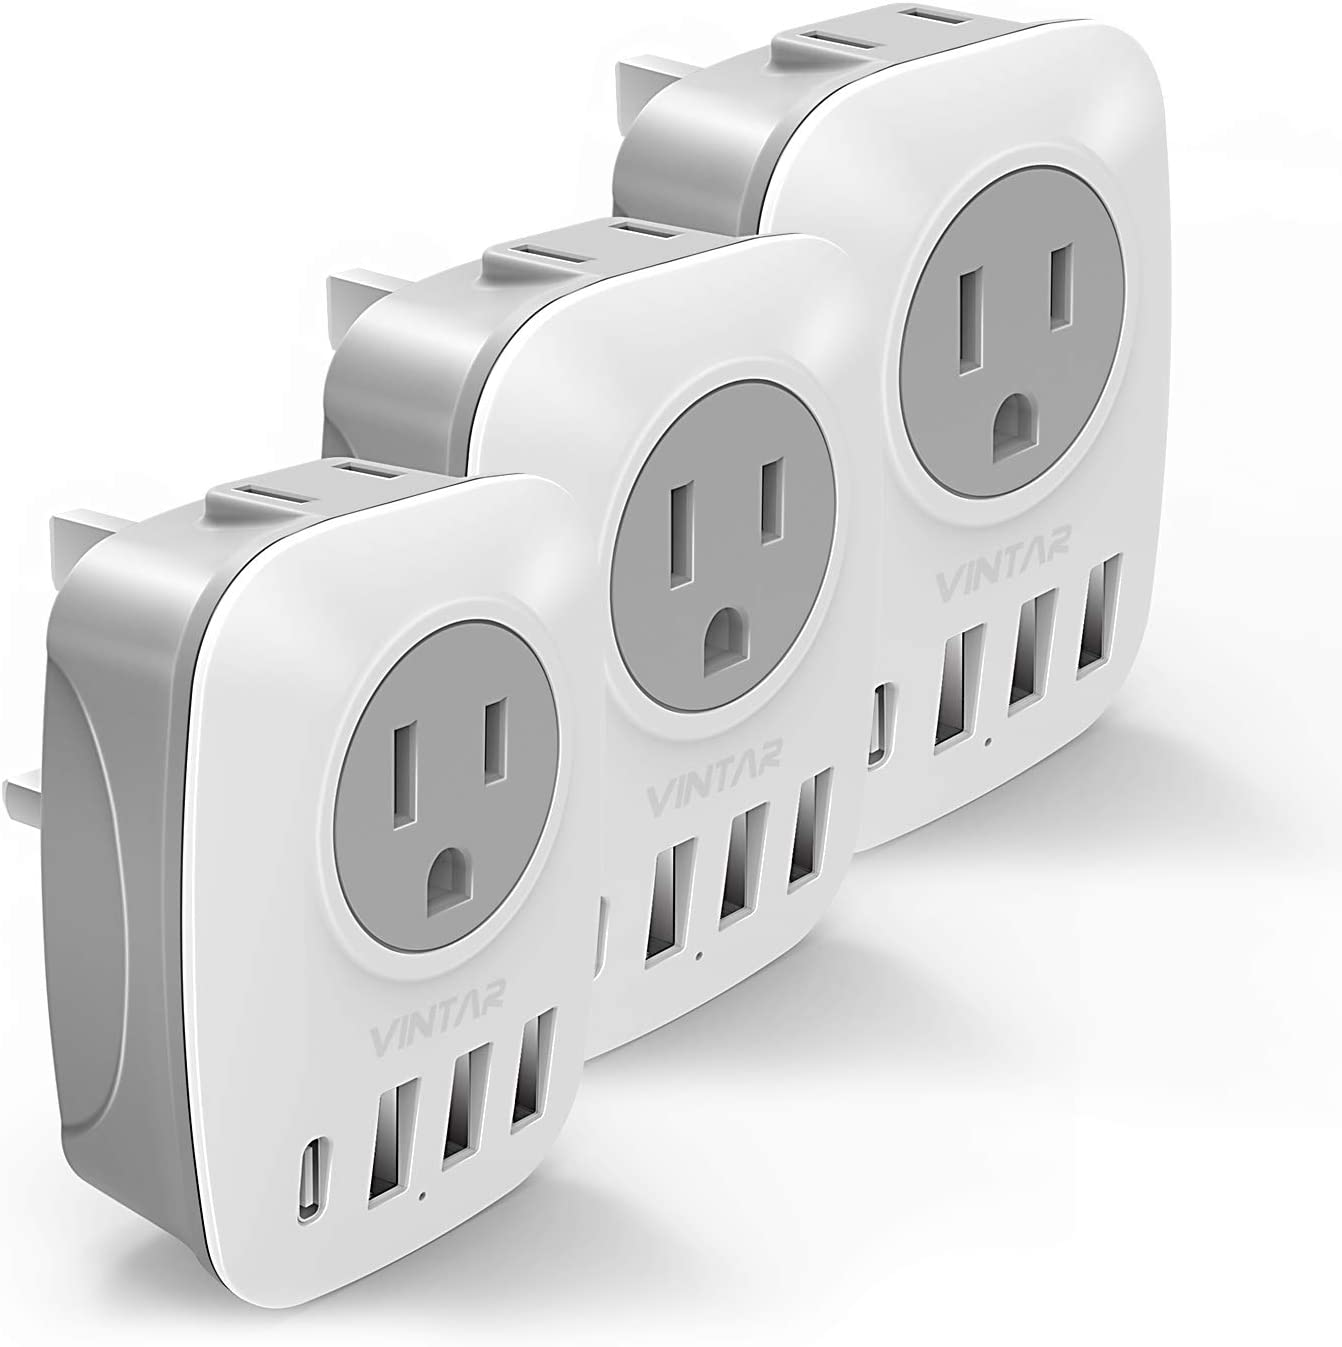 [3-Pack] UK Ireland Travel Plug Adapter, VINTAR International Power Adaptor with 1USB C Compatible with iPhone 12/12 Pro / 12Pro Max, 2American Outlets and 3USB Ports, 6 in 1 Type G Plug Adapter